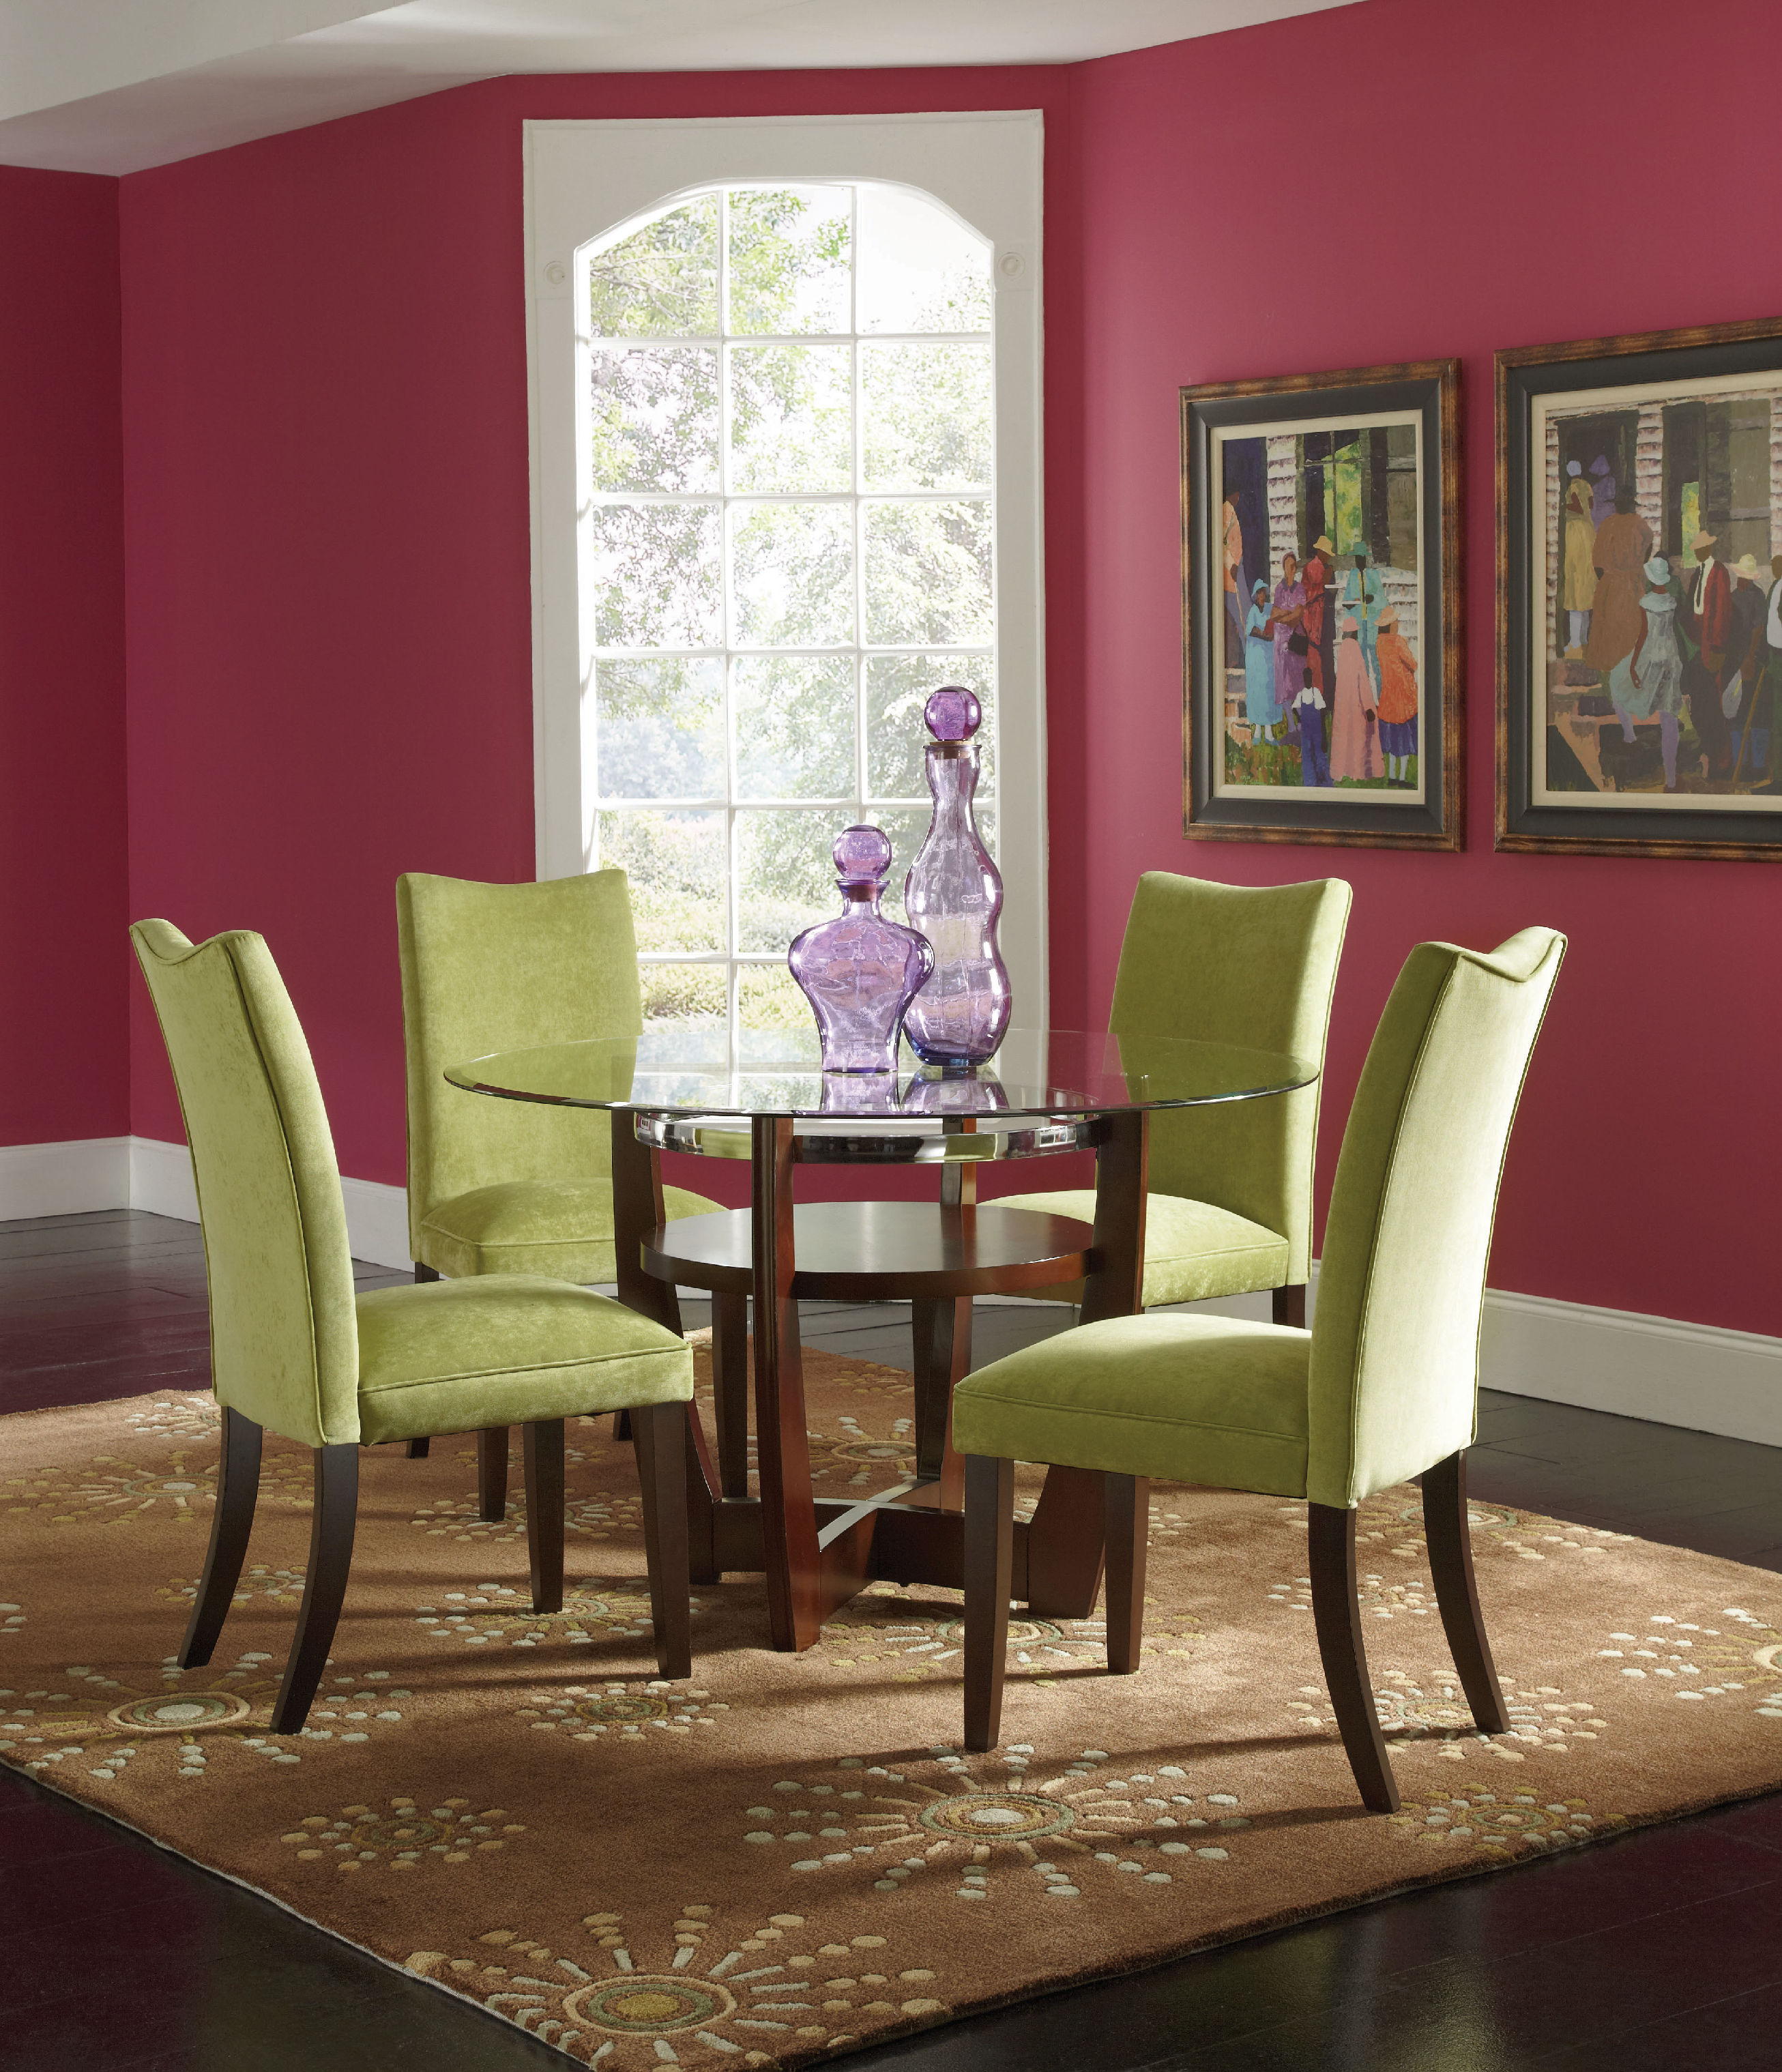 side accent chairs the outrageous amazing round dining room table decor interior paint color with window treatments and parsons also area rug interesting design inexpensive small